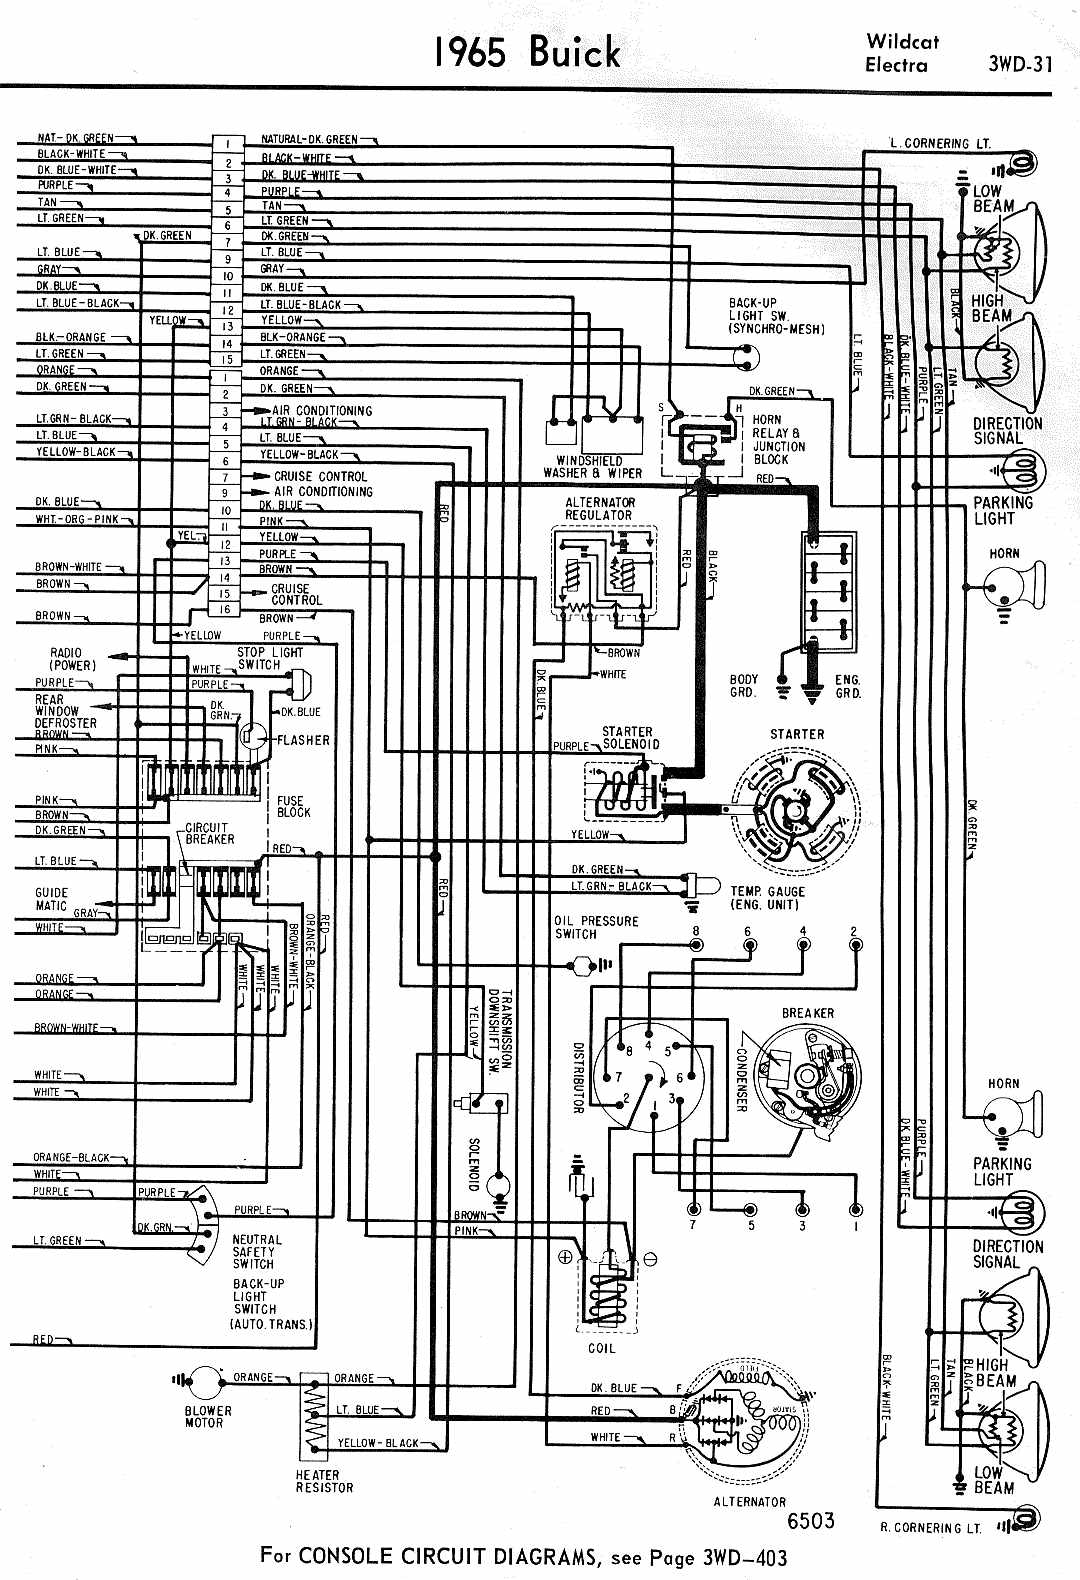 Wildcat Wiring Diagram Trusted Diagrams Montana Mountaineer Radio U2022